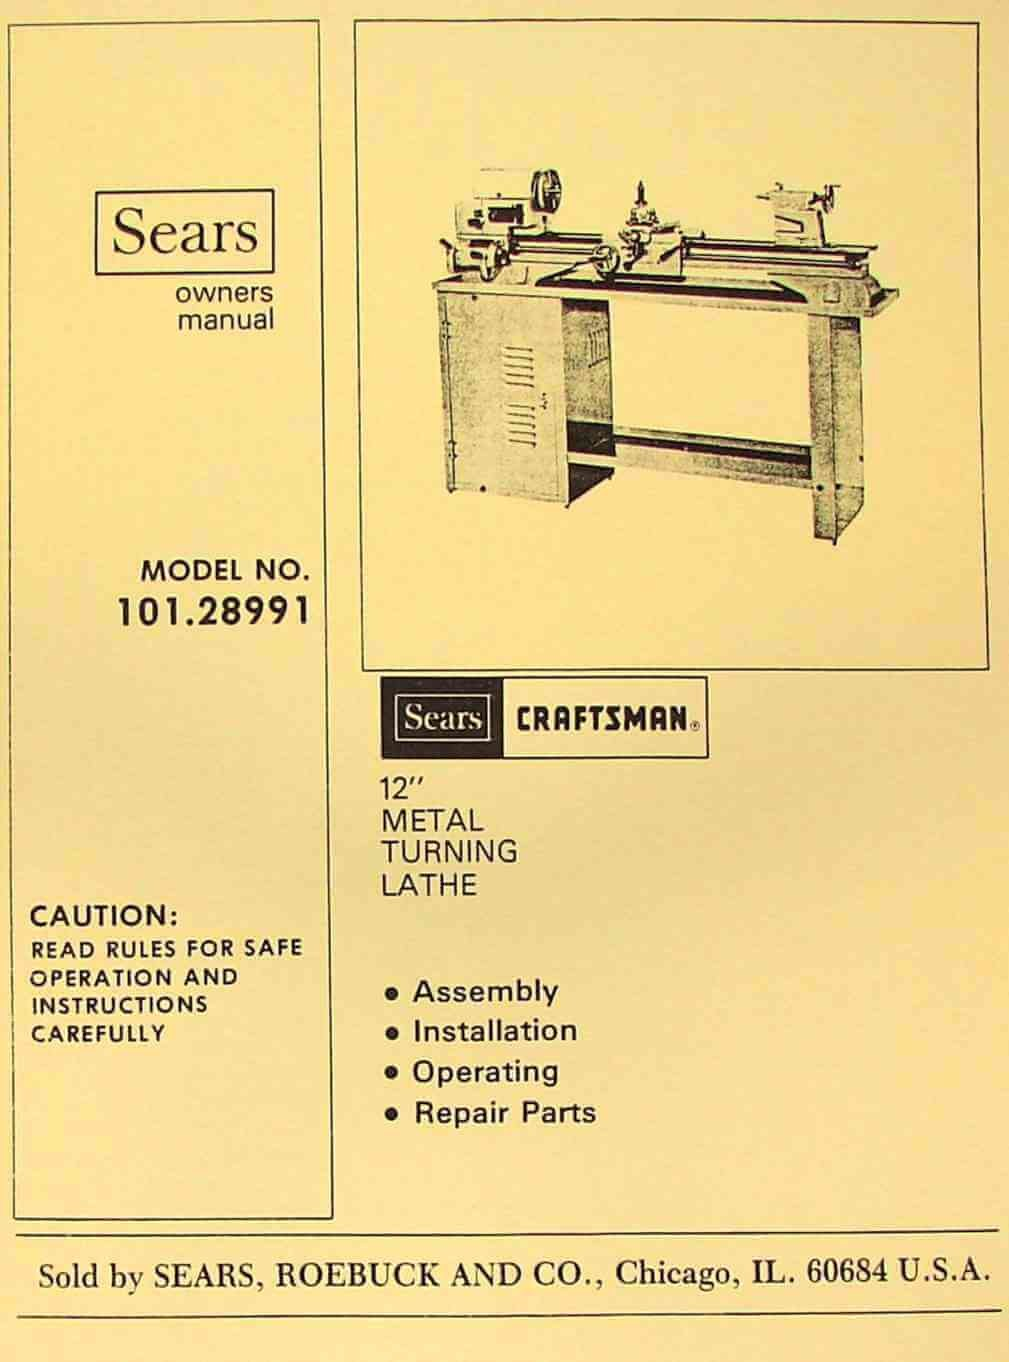 Craftsman Atlas 10128991 12 Metal Lathe Operators Parts Manual Sewing Machine Threading Diagram Misc Books